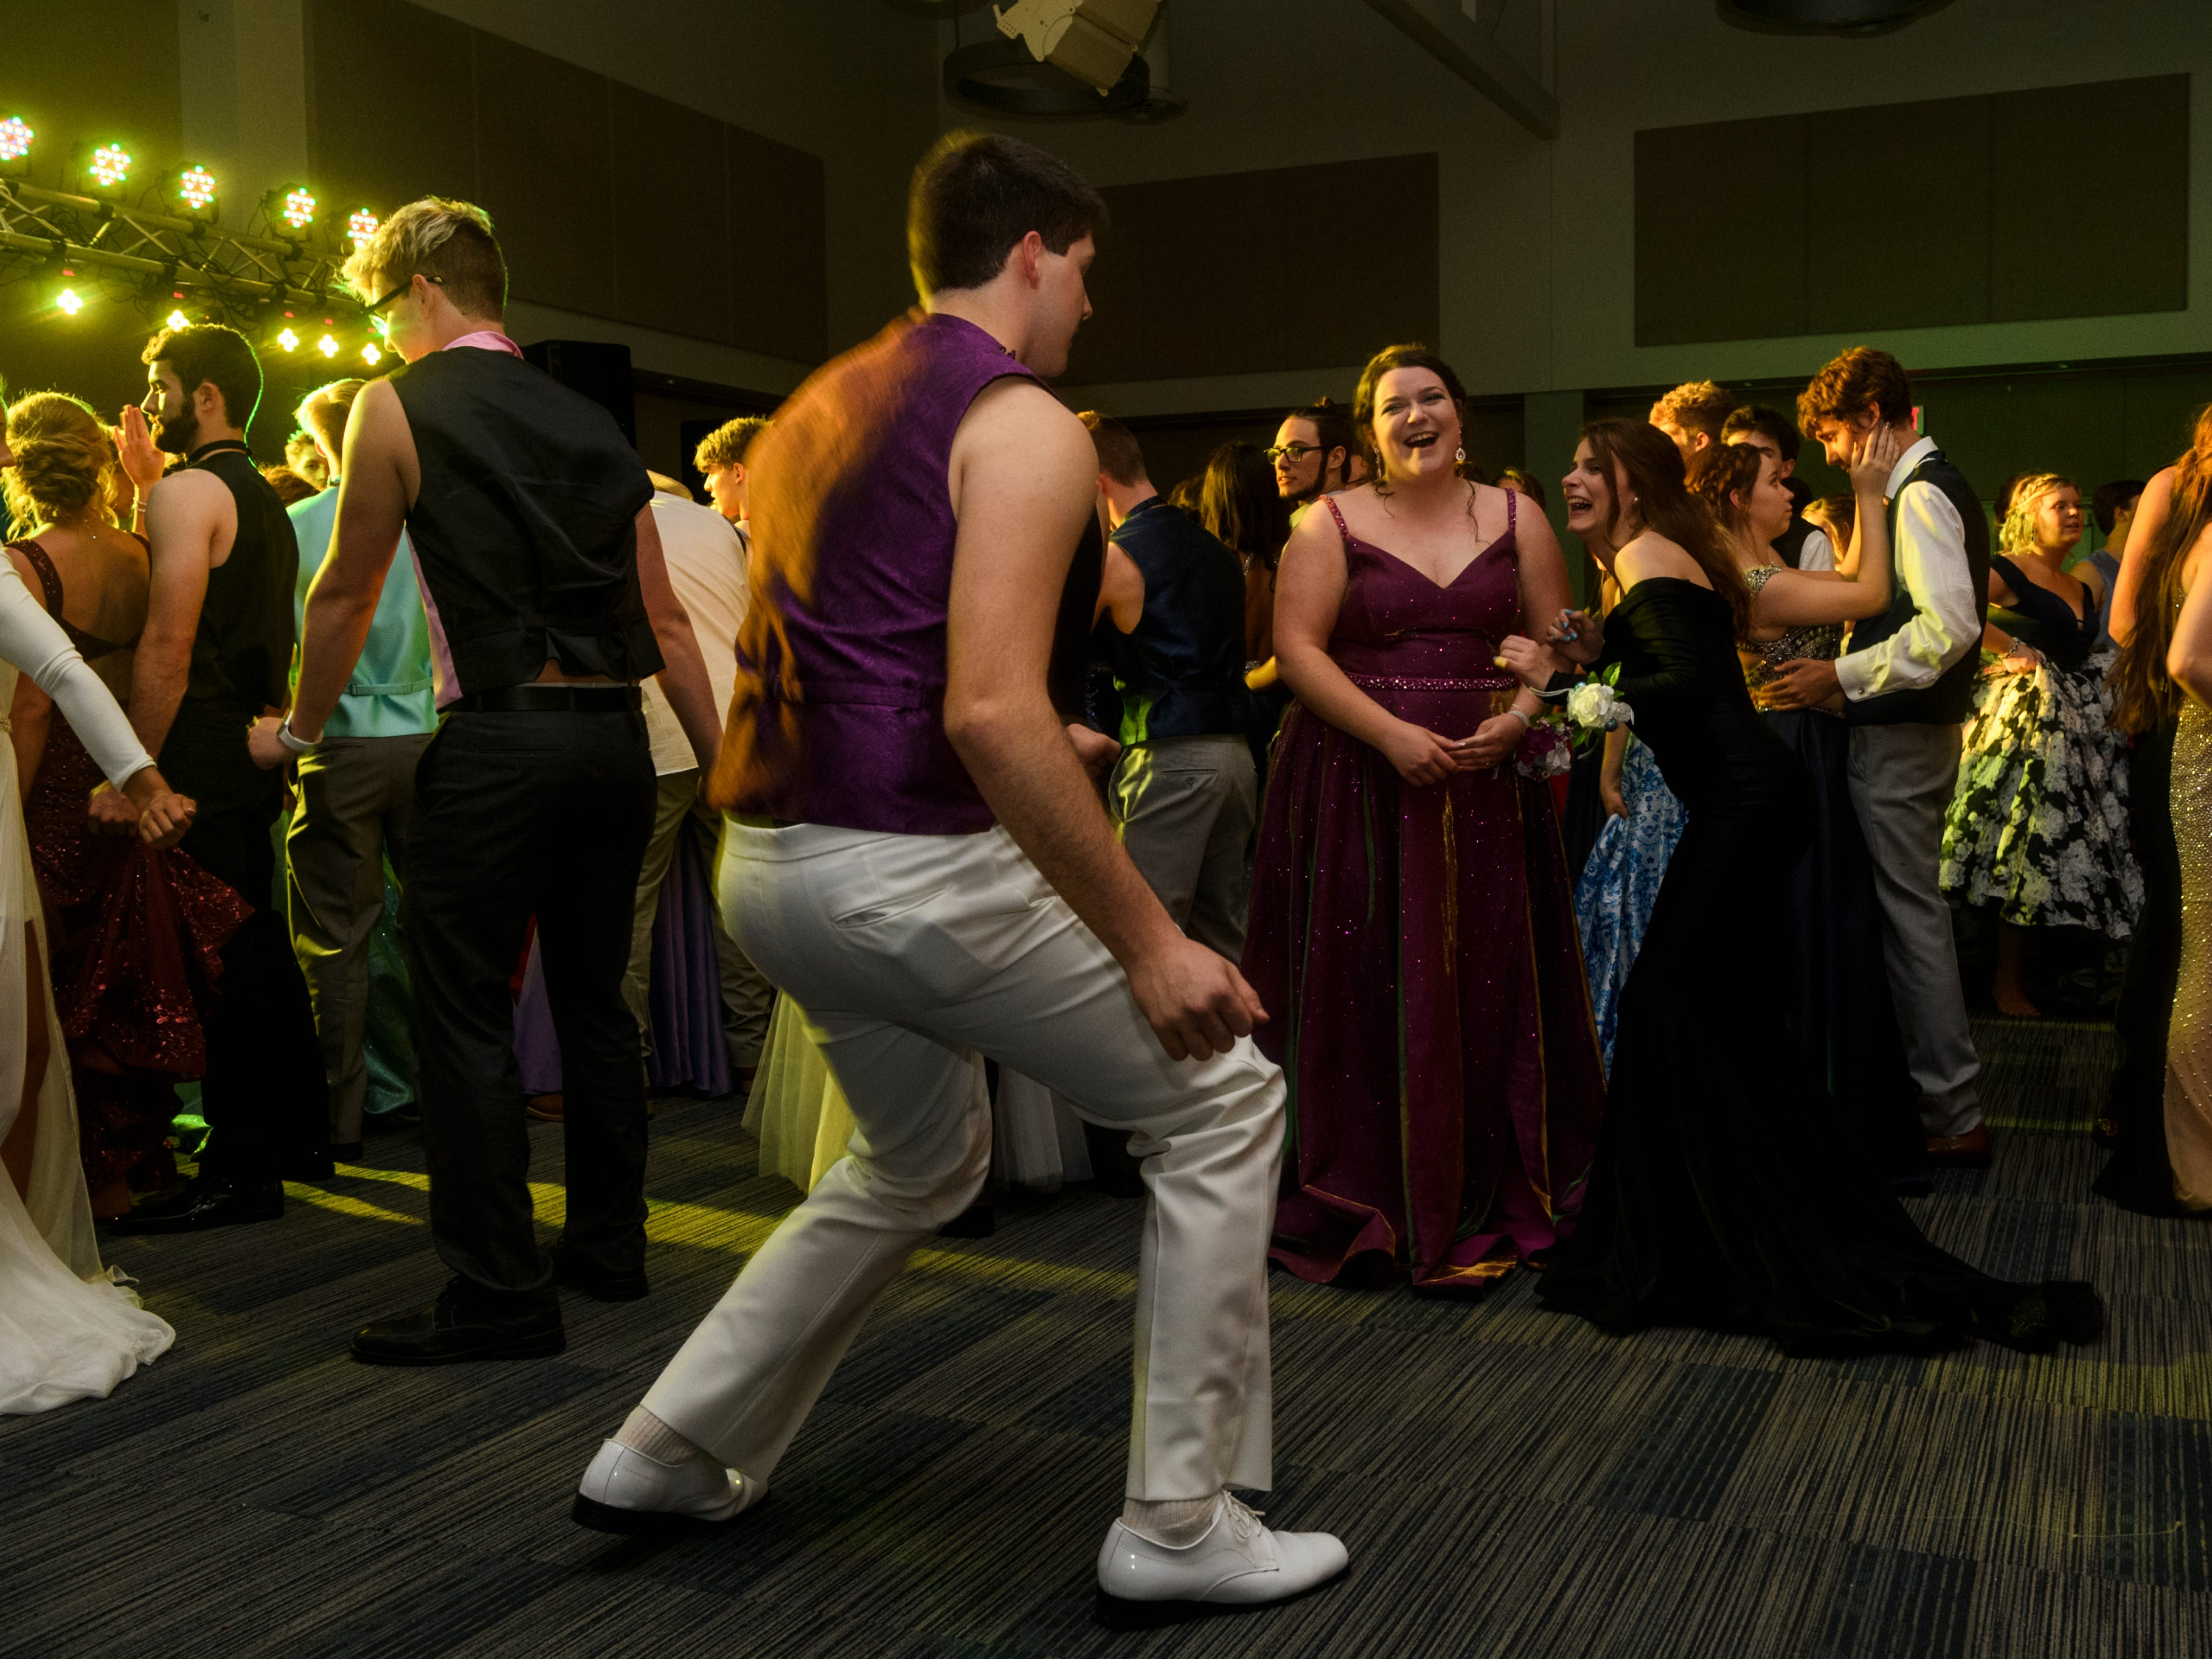 Students dance the night away during Mt. Vernon's prom held inside the University of Southern Indiana's Carter Hall in Evansville, Ind., Saturday, May 4, 2019.